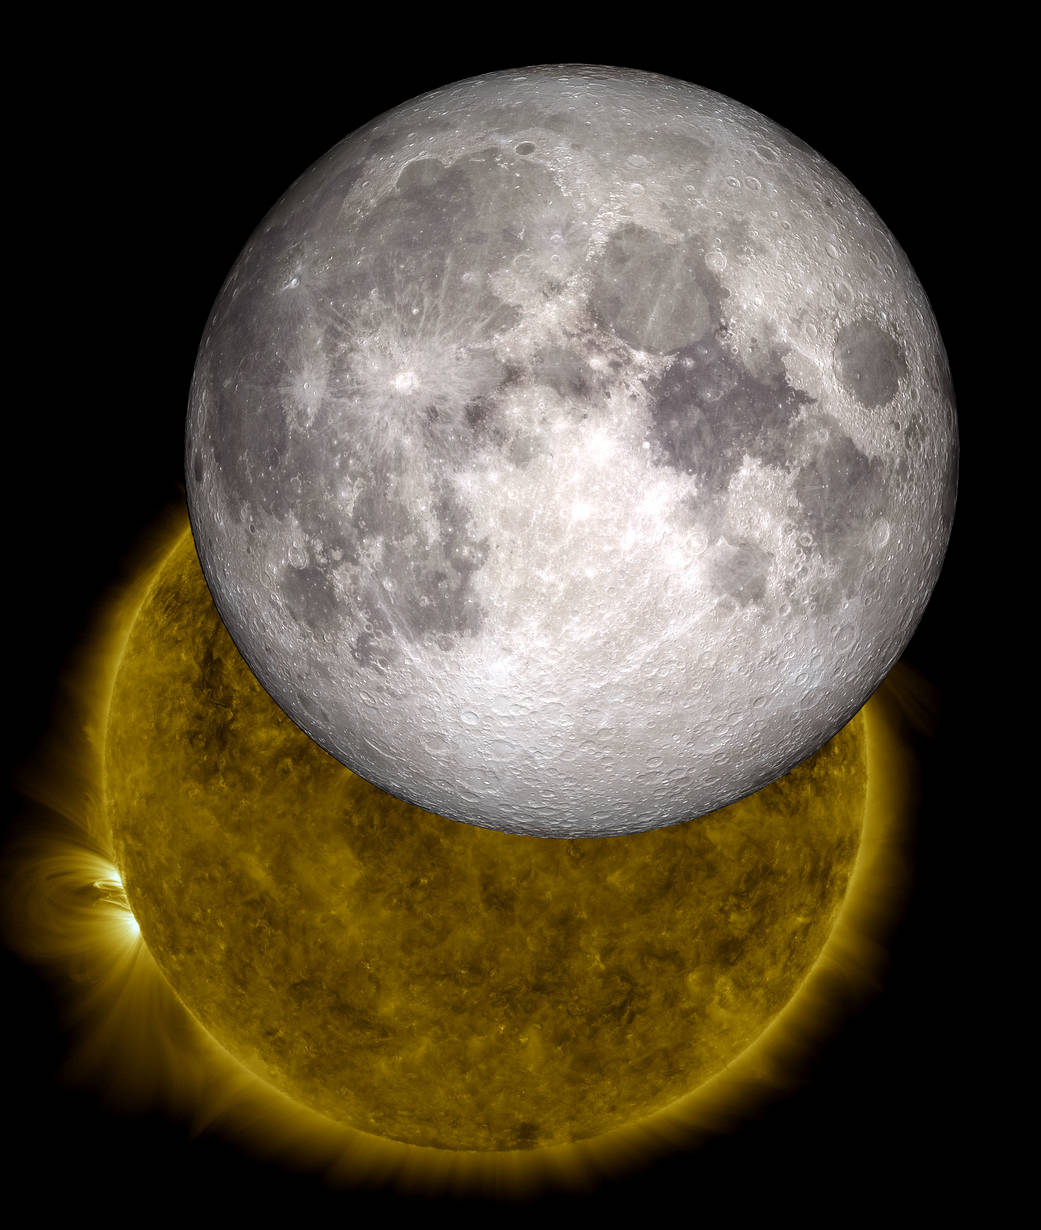 Composite image of the Sun and Moon